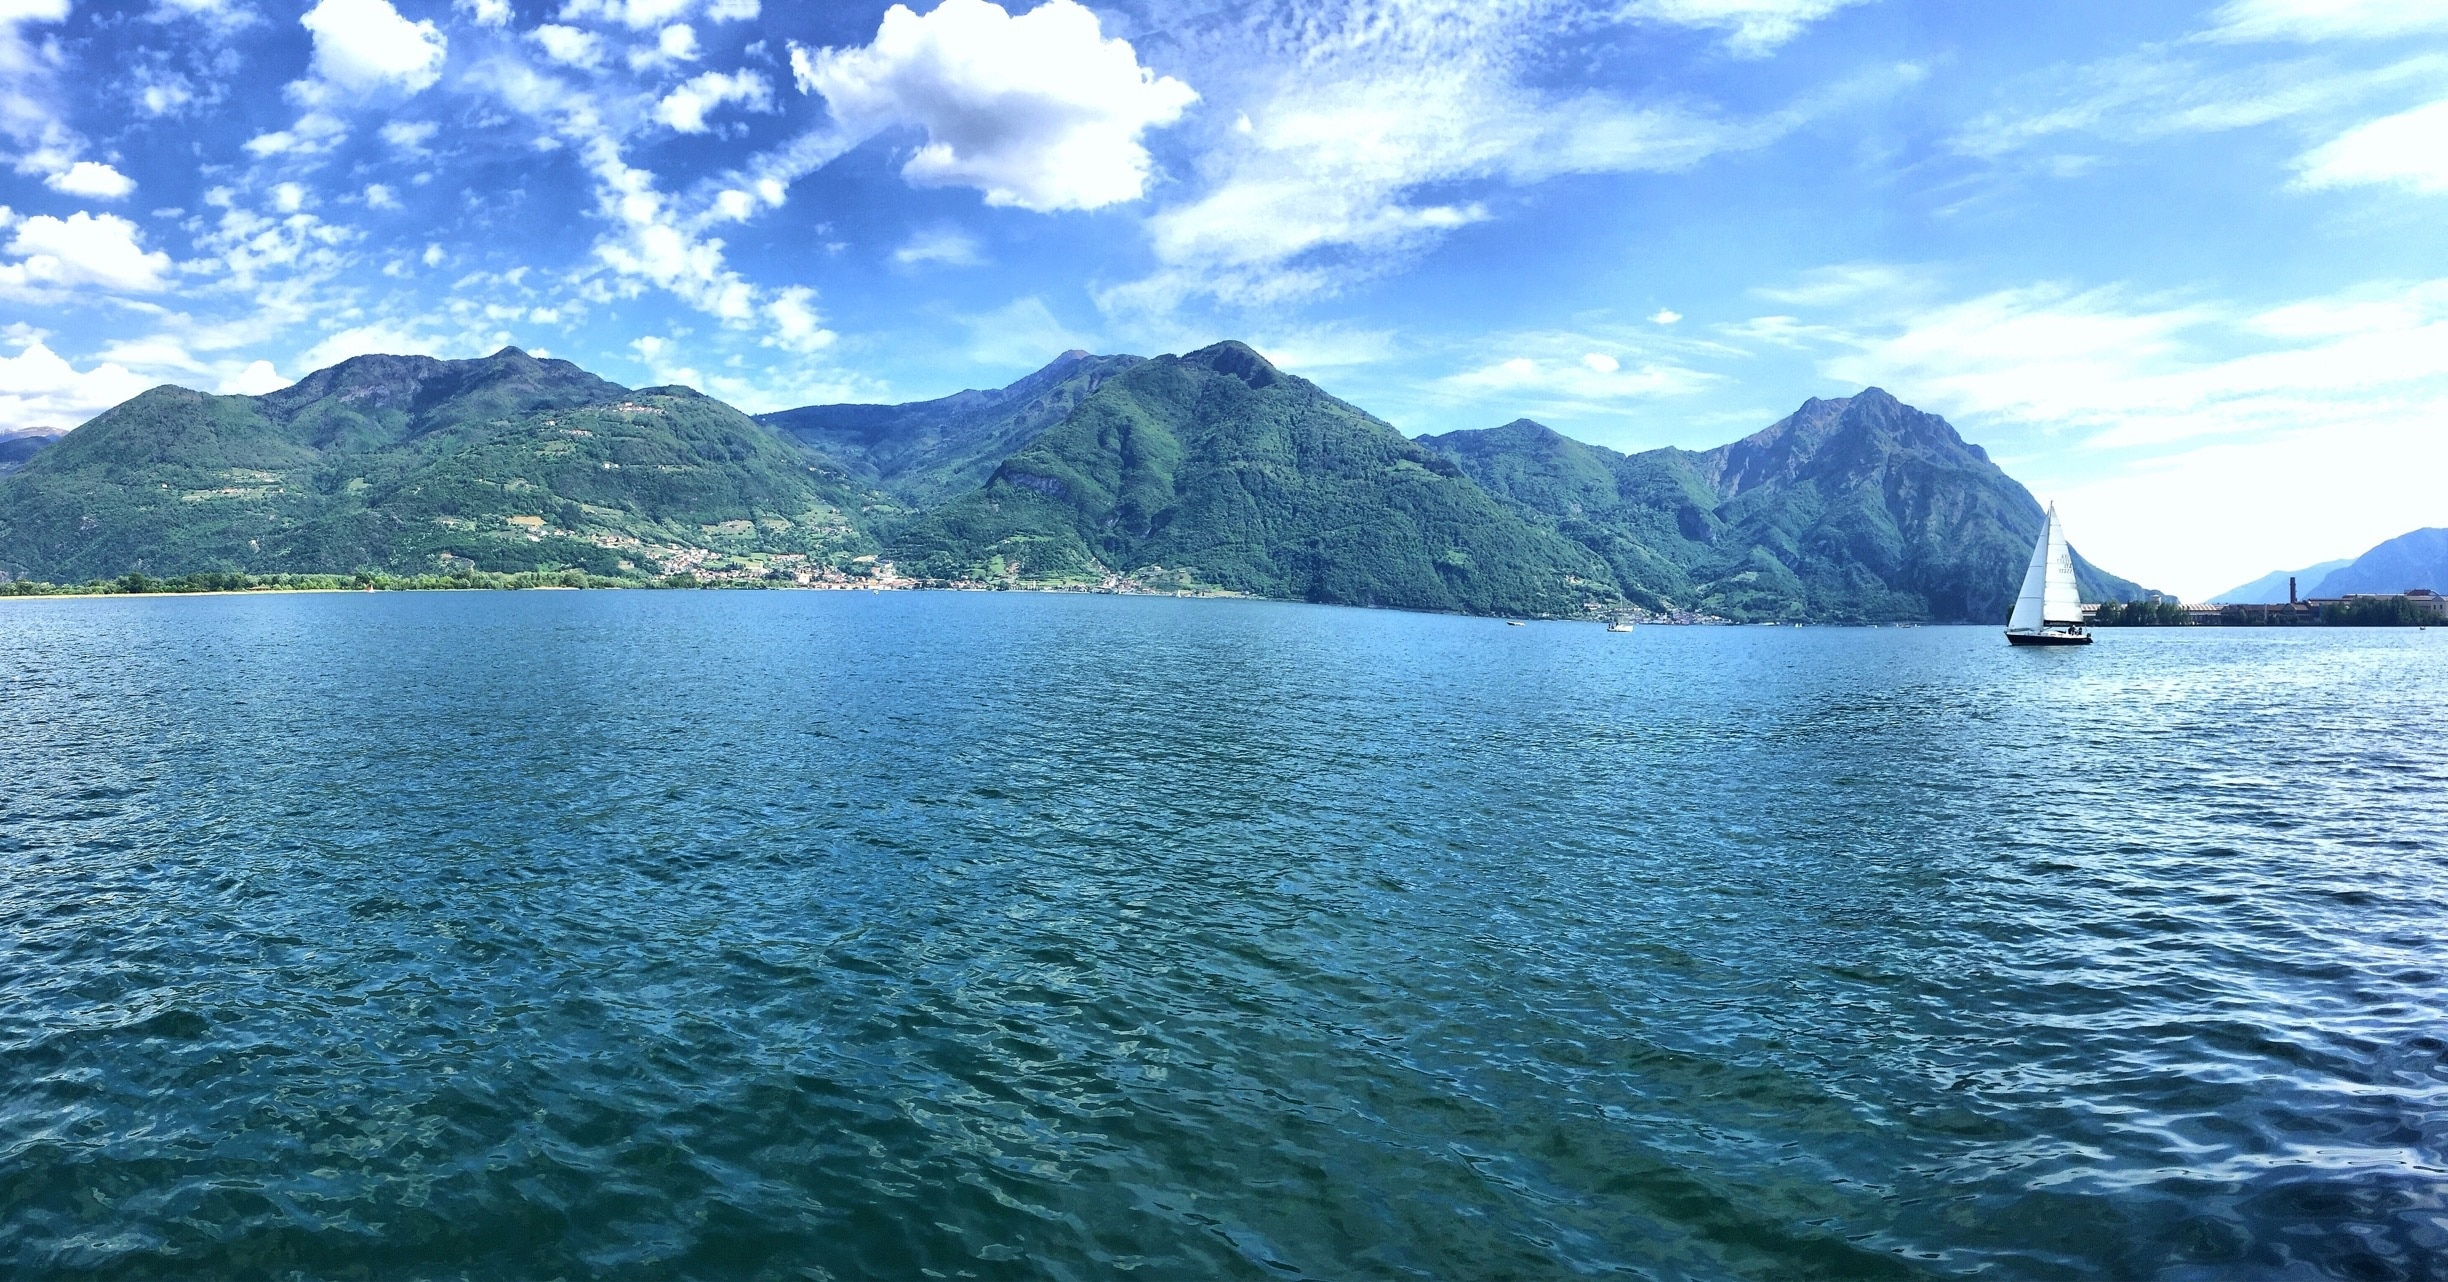 Lovere, Lombardy, Italy